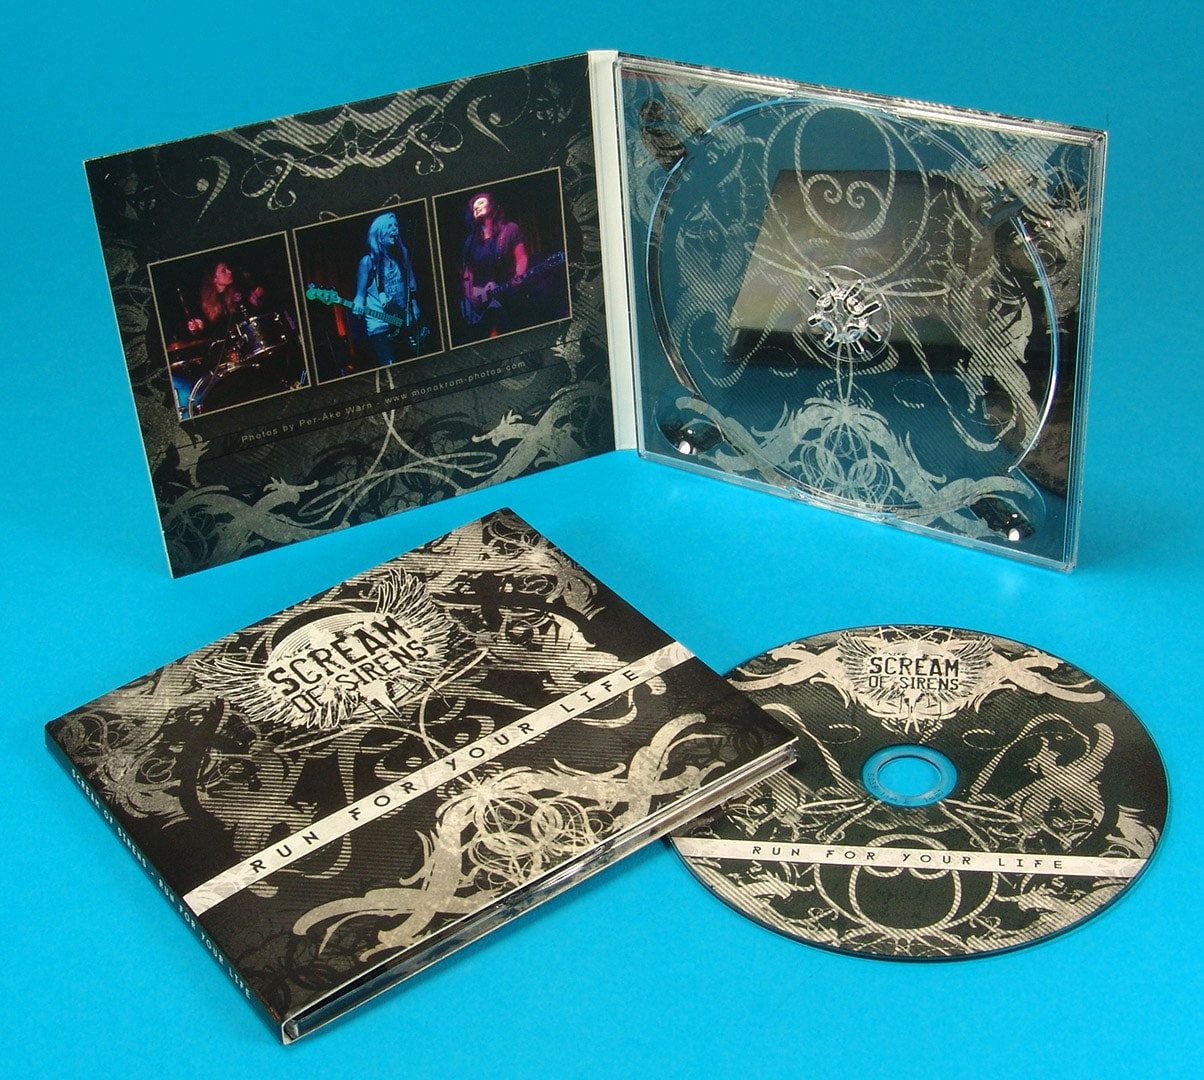 Four page CD digipak with UV LED printed discs